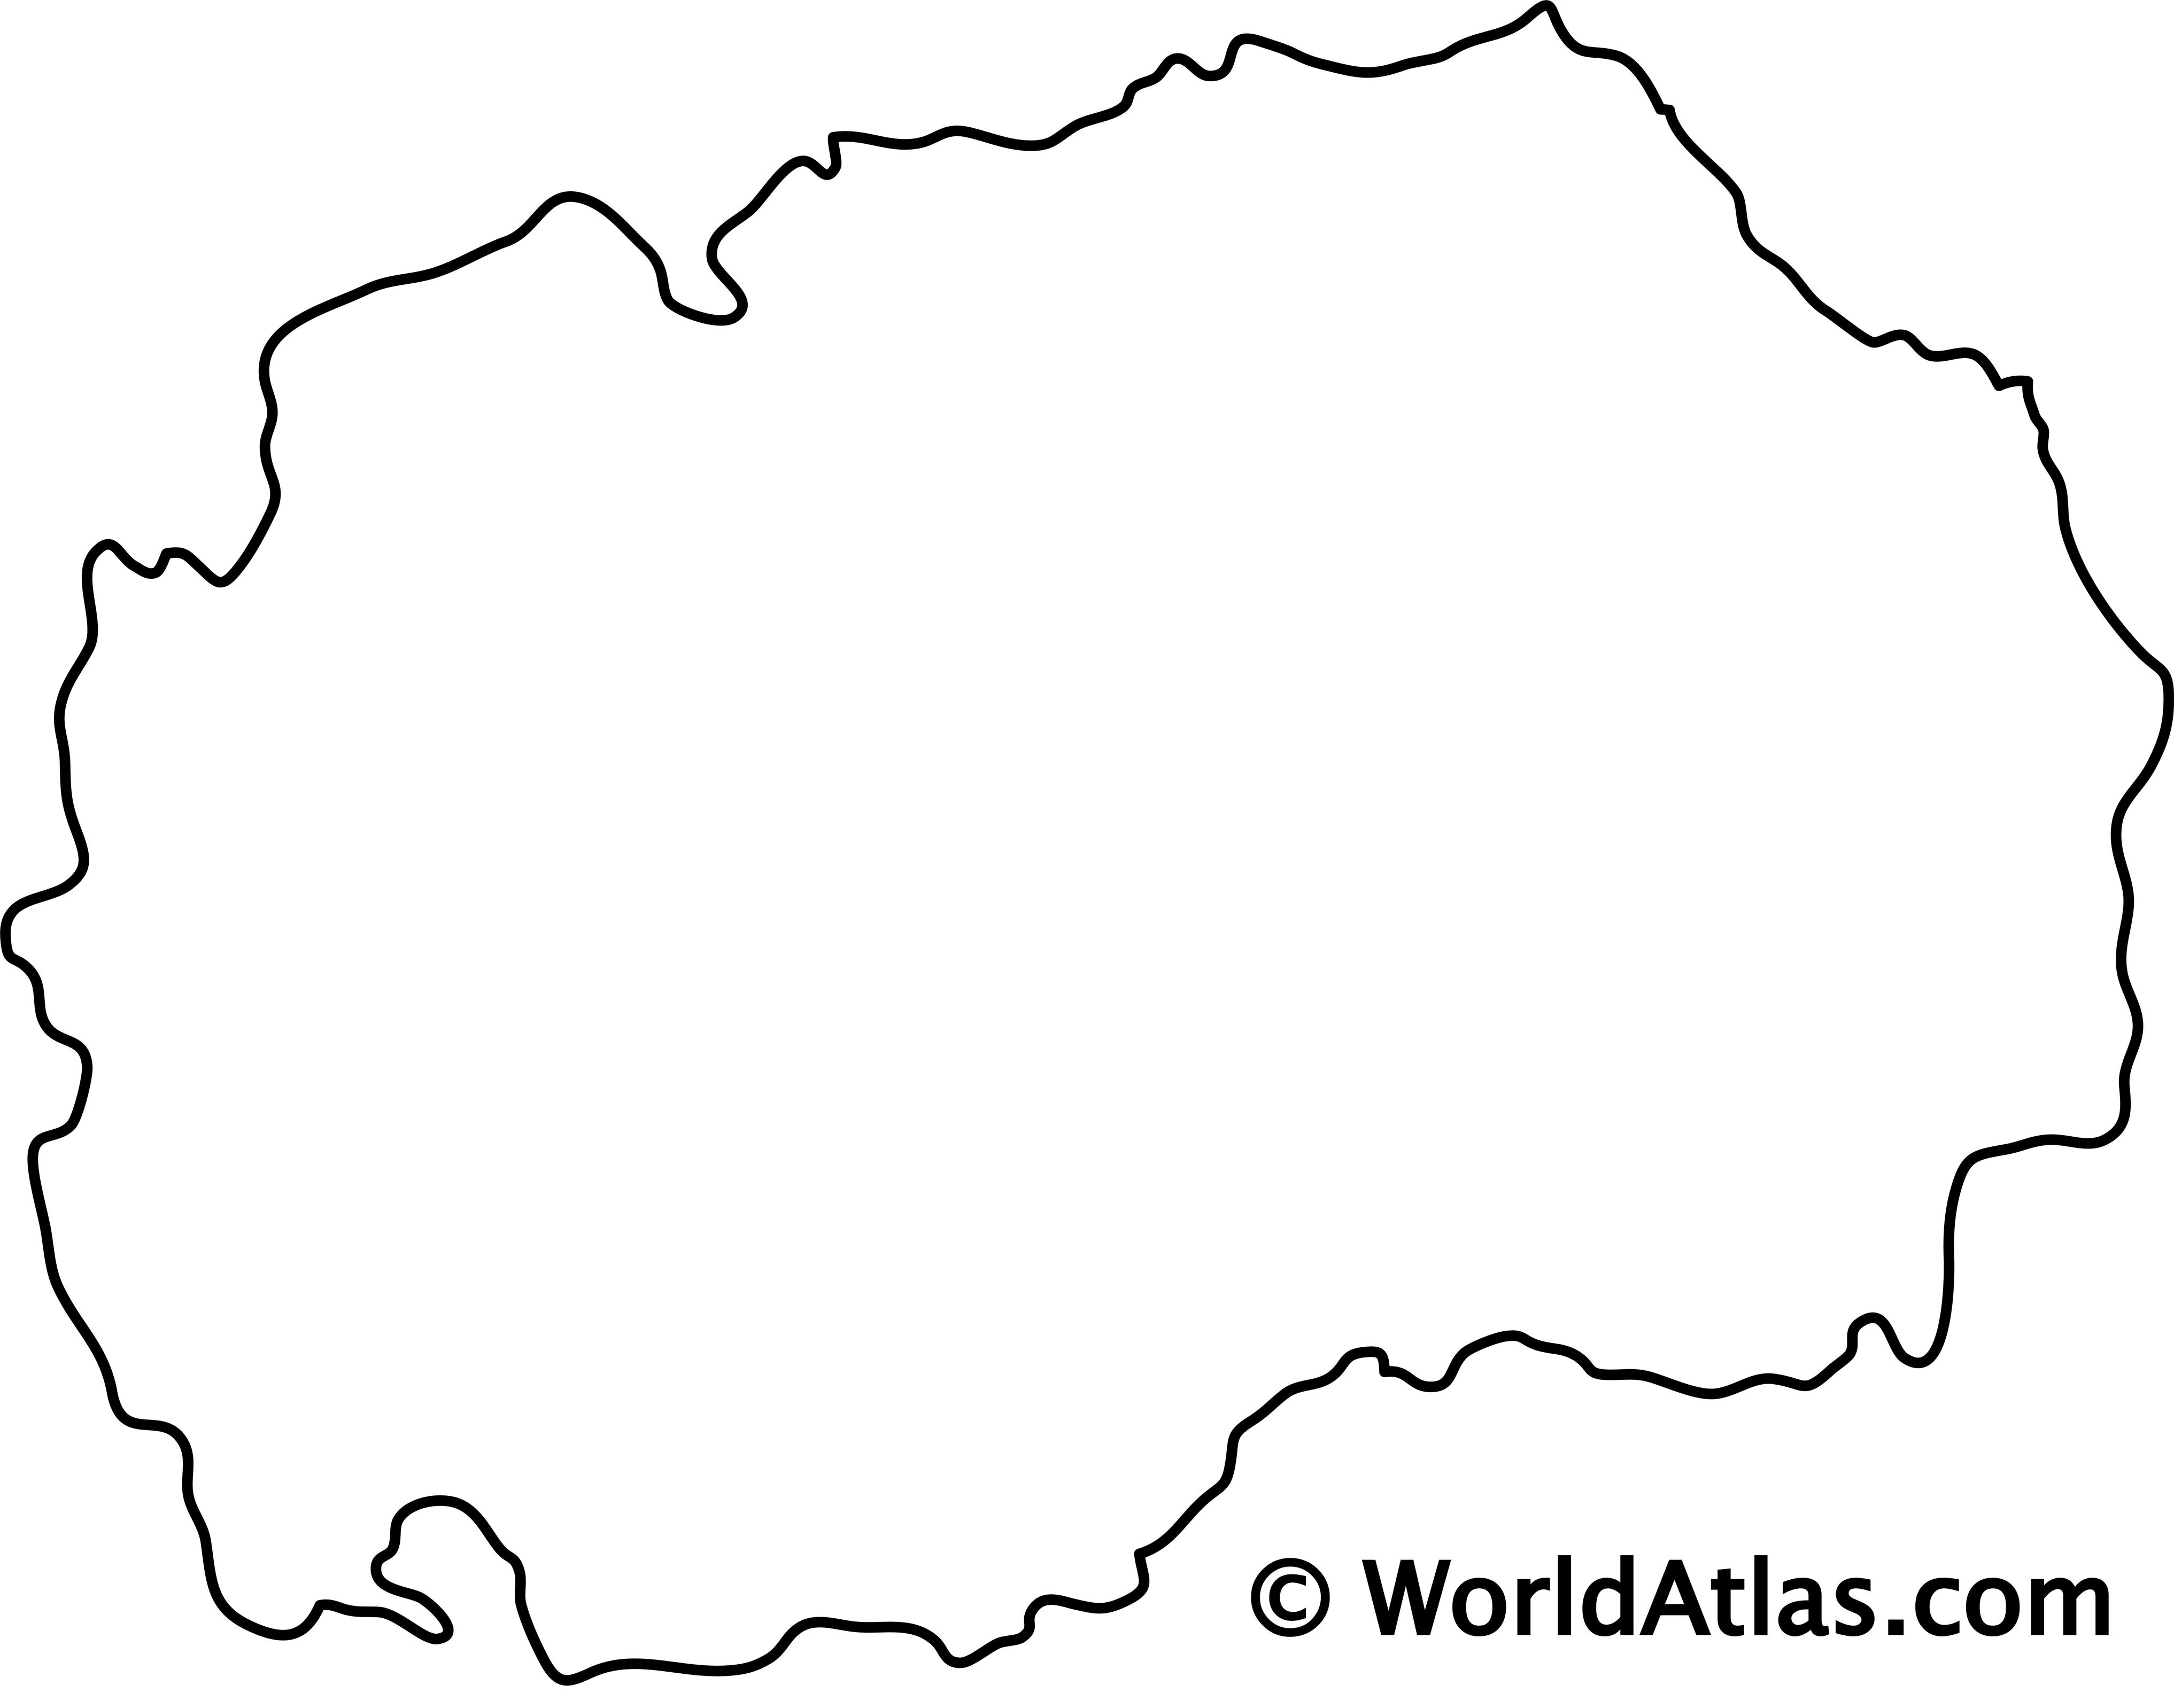 Blank Outline Map of North Macedonia